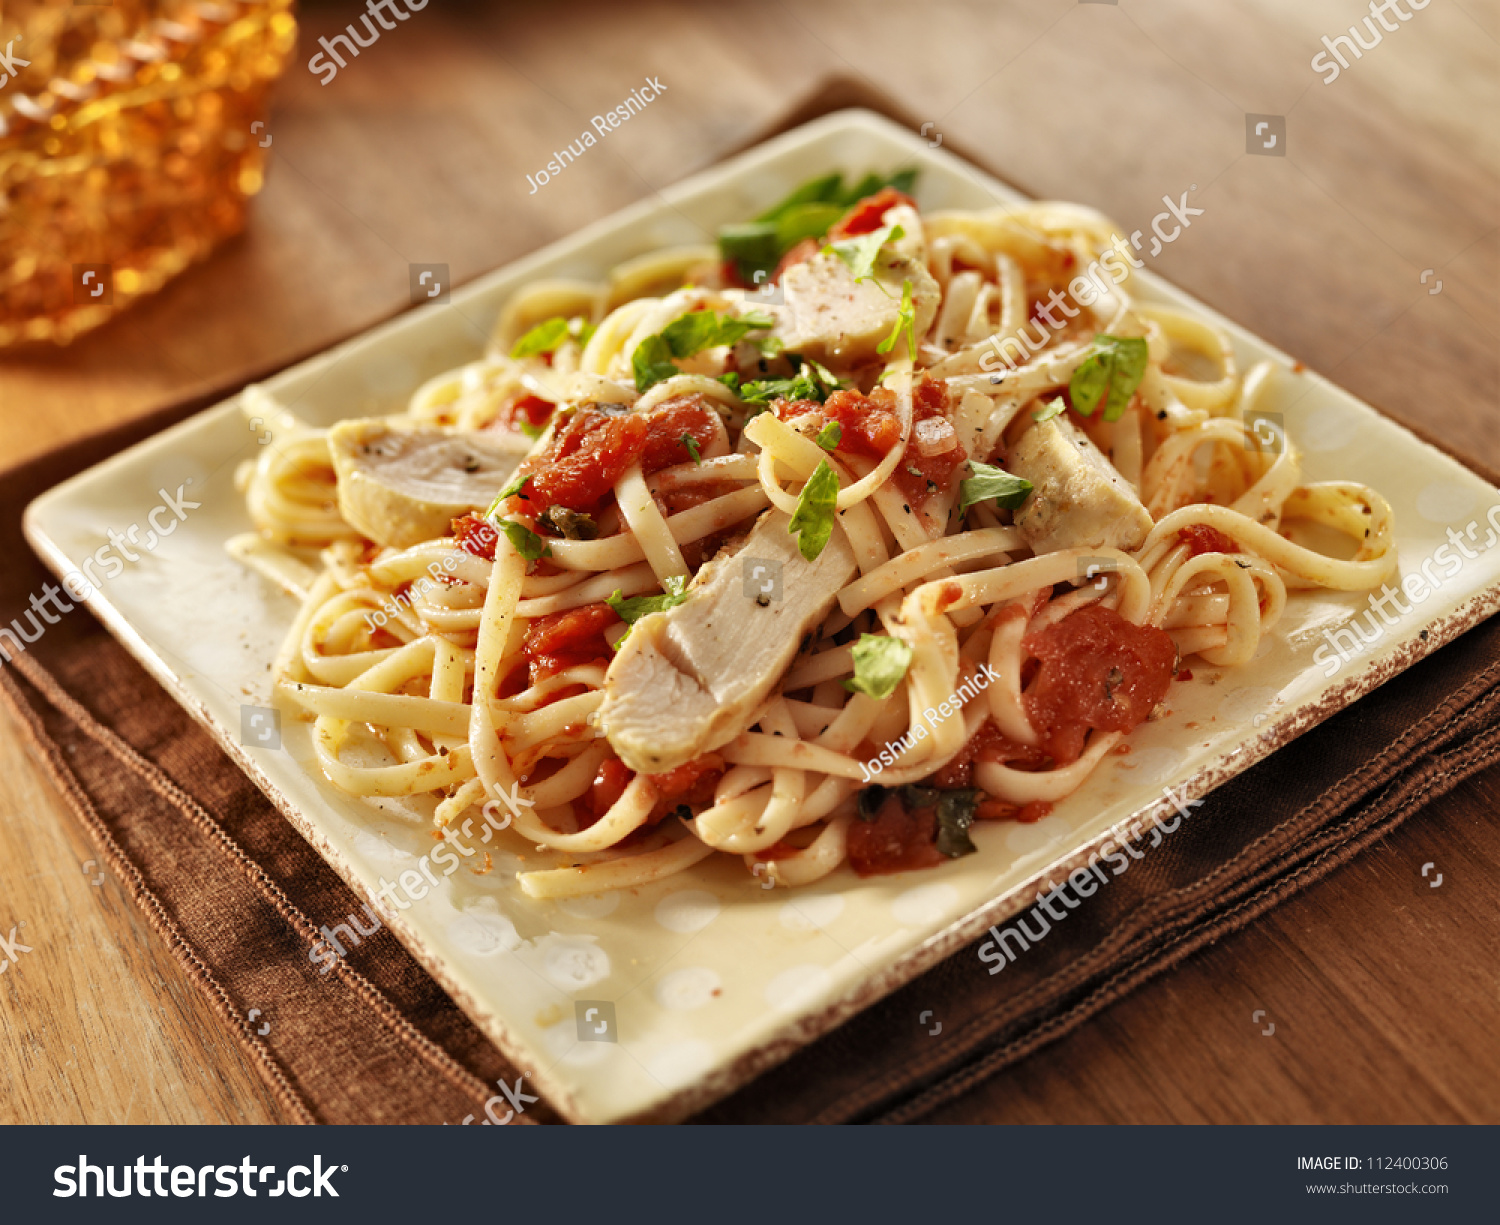 Tomato Herb Linguine With Grilled Chicken Slices Stock Photo 112400306 ...